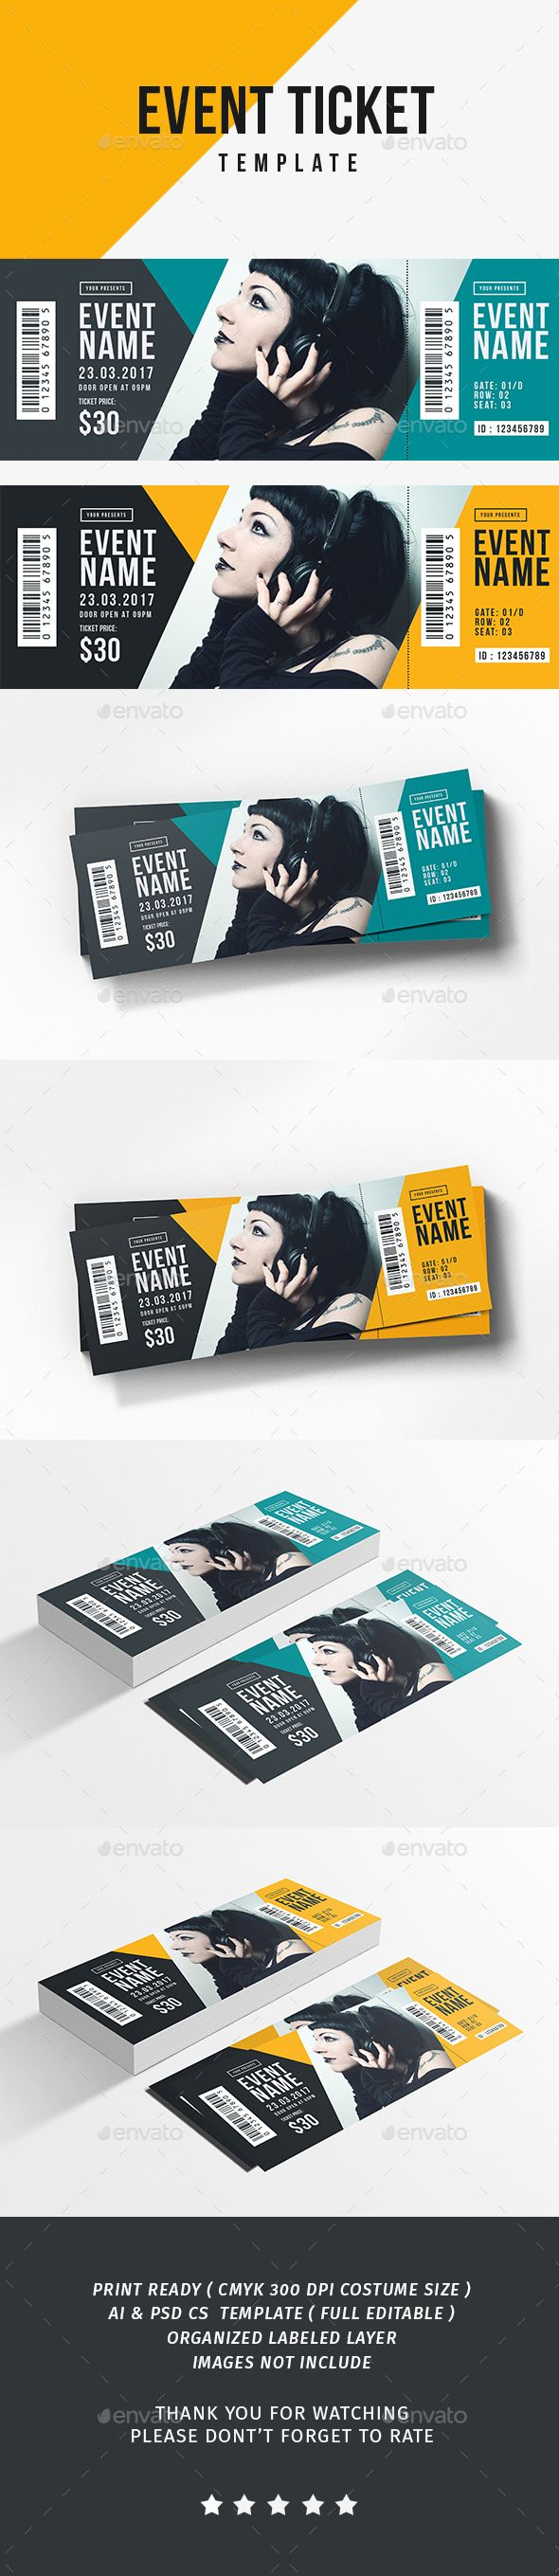 Event Ticket — Photoshop PSD #conference #unique • Download ➝ https://graphicriver.net/item/event-ticket/19455171?ref=pxcr